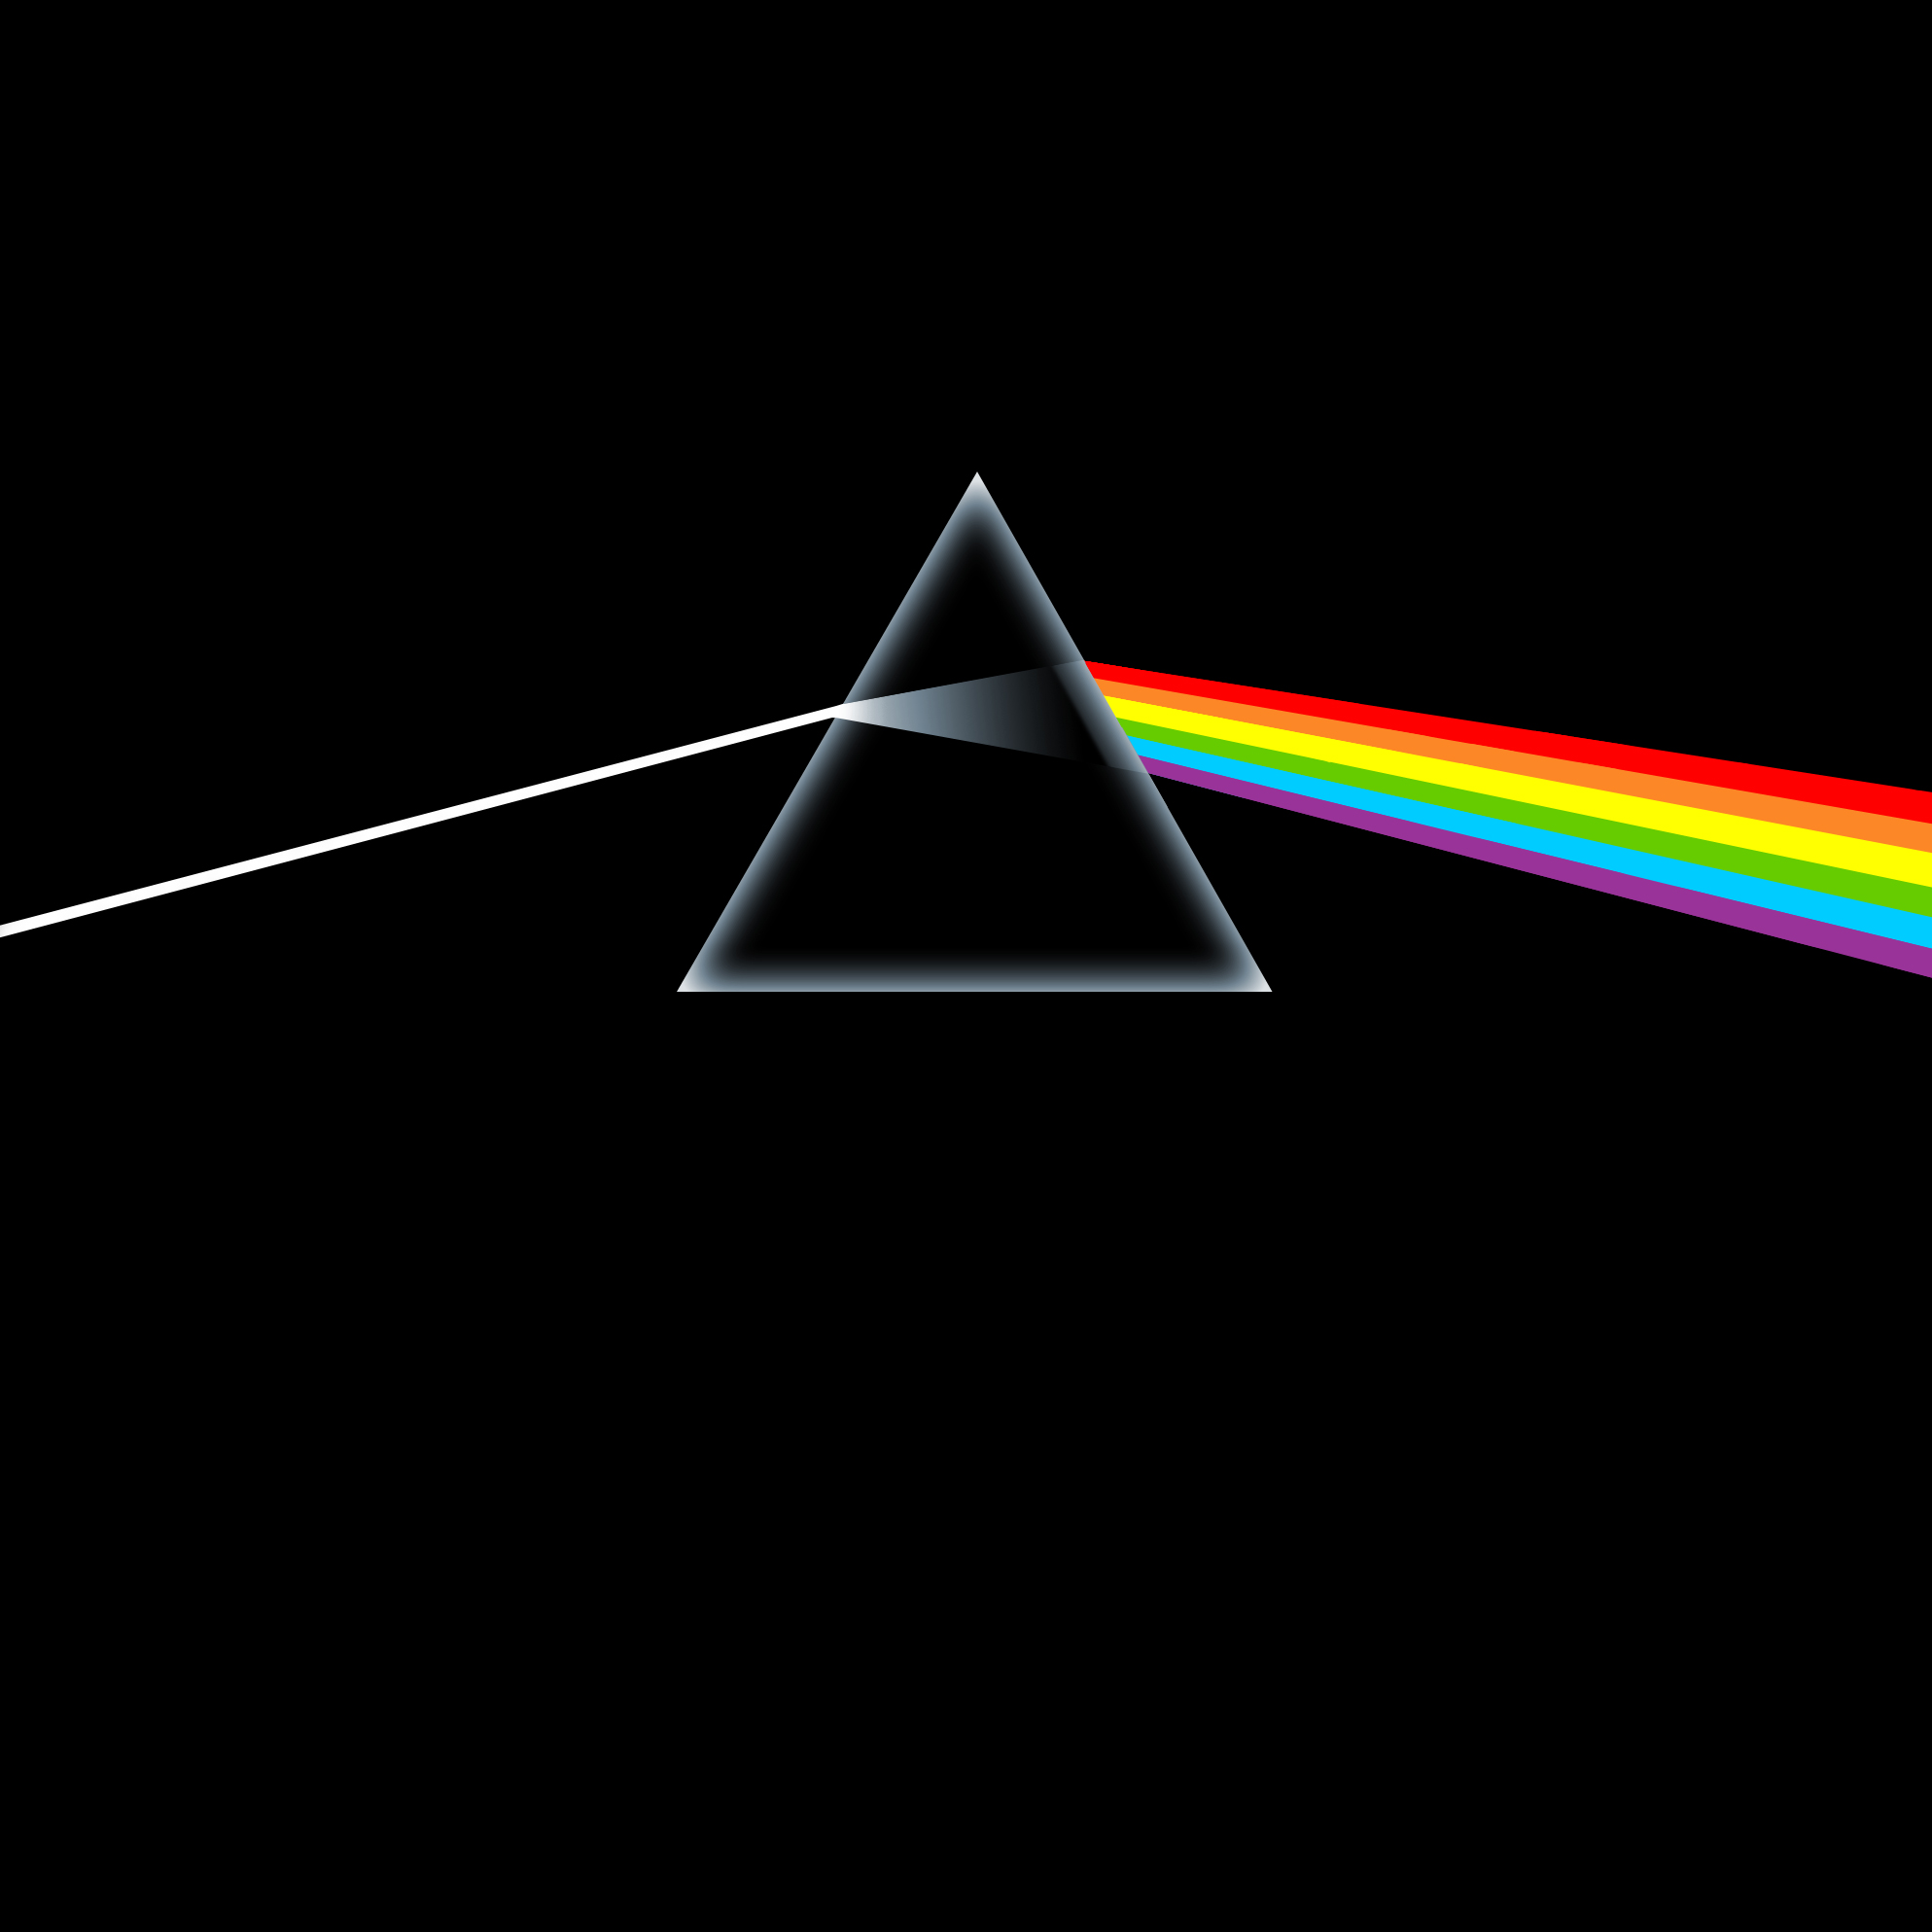 1987x1987 Pink Floyd Images Wallpapers - Picserio.com